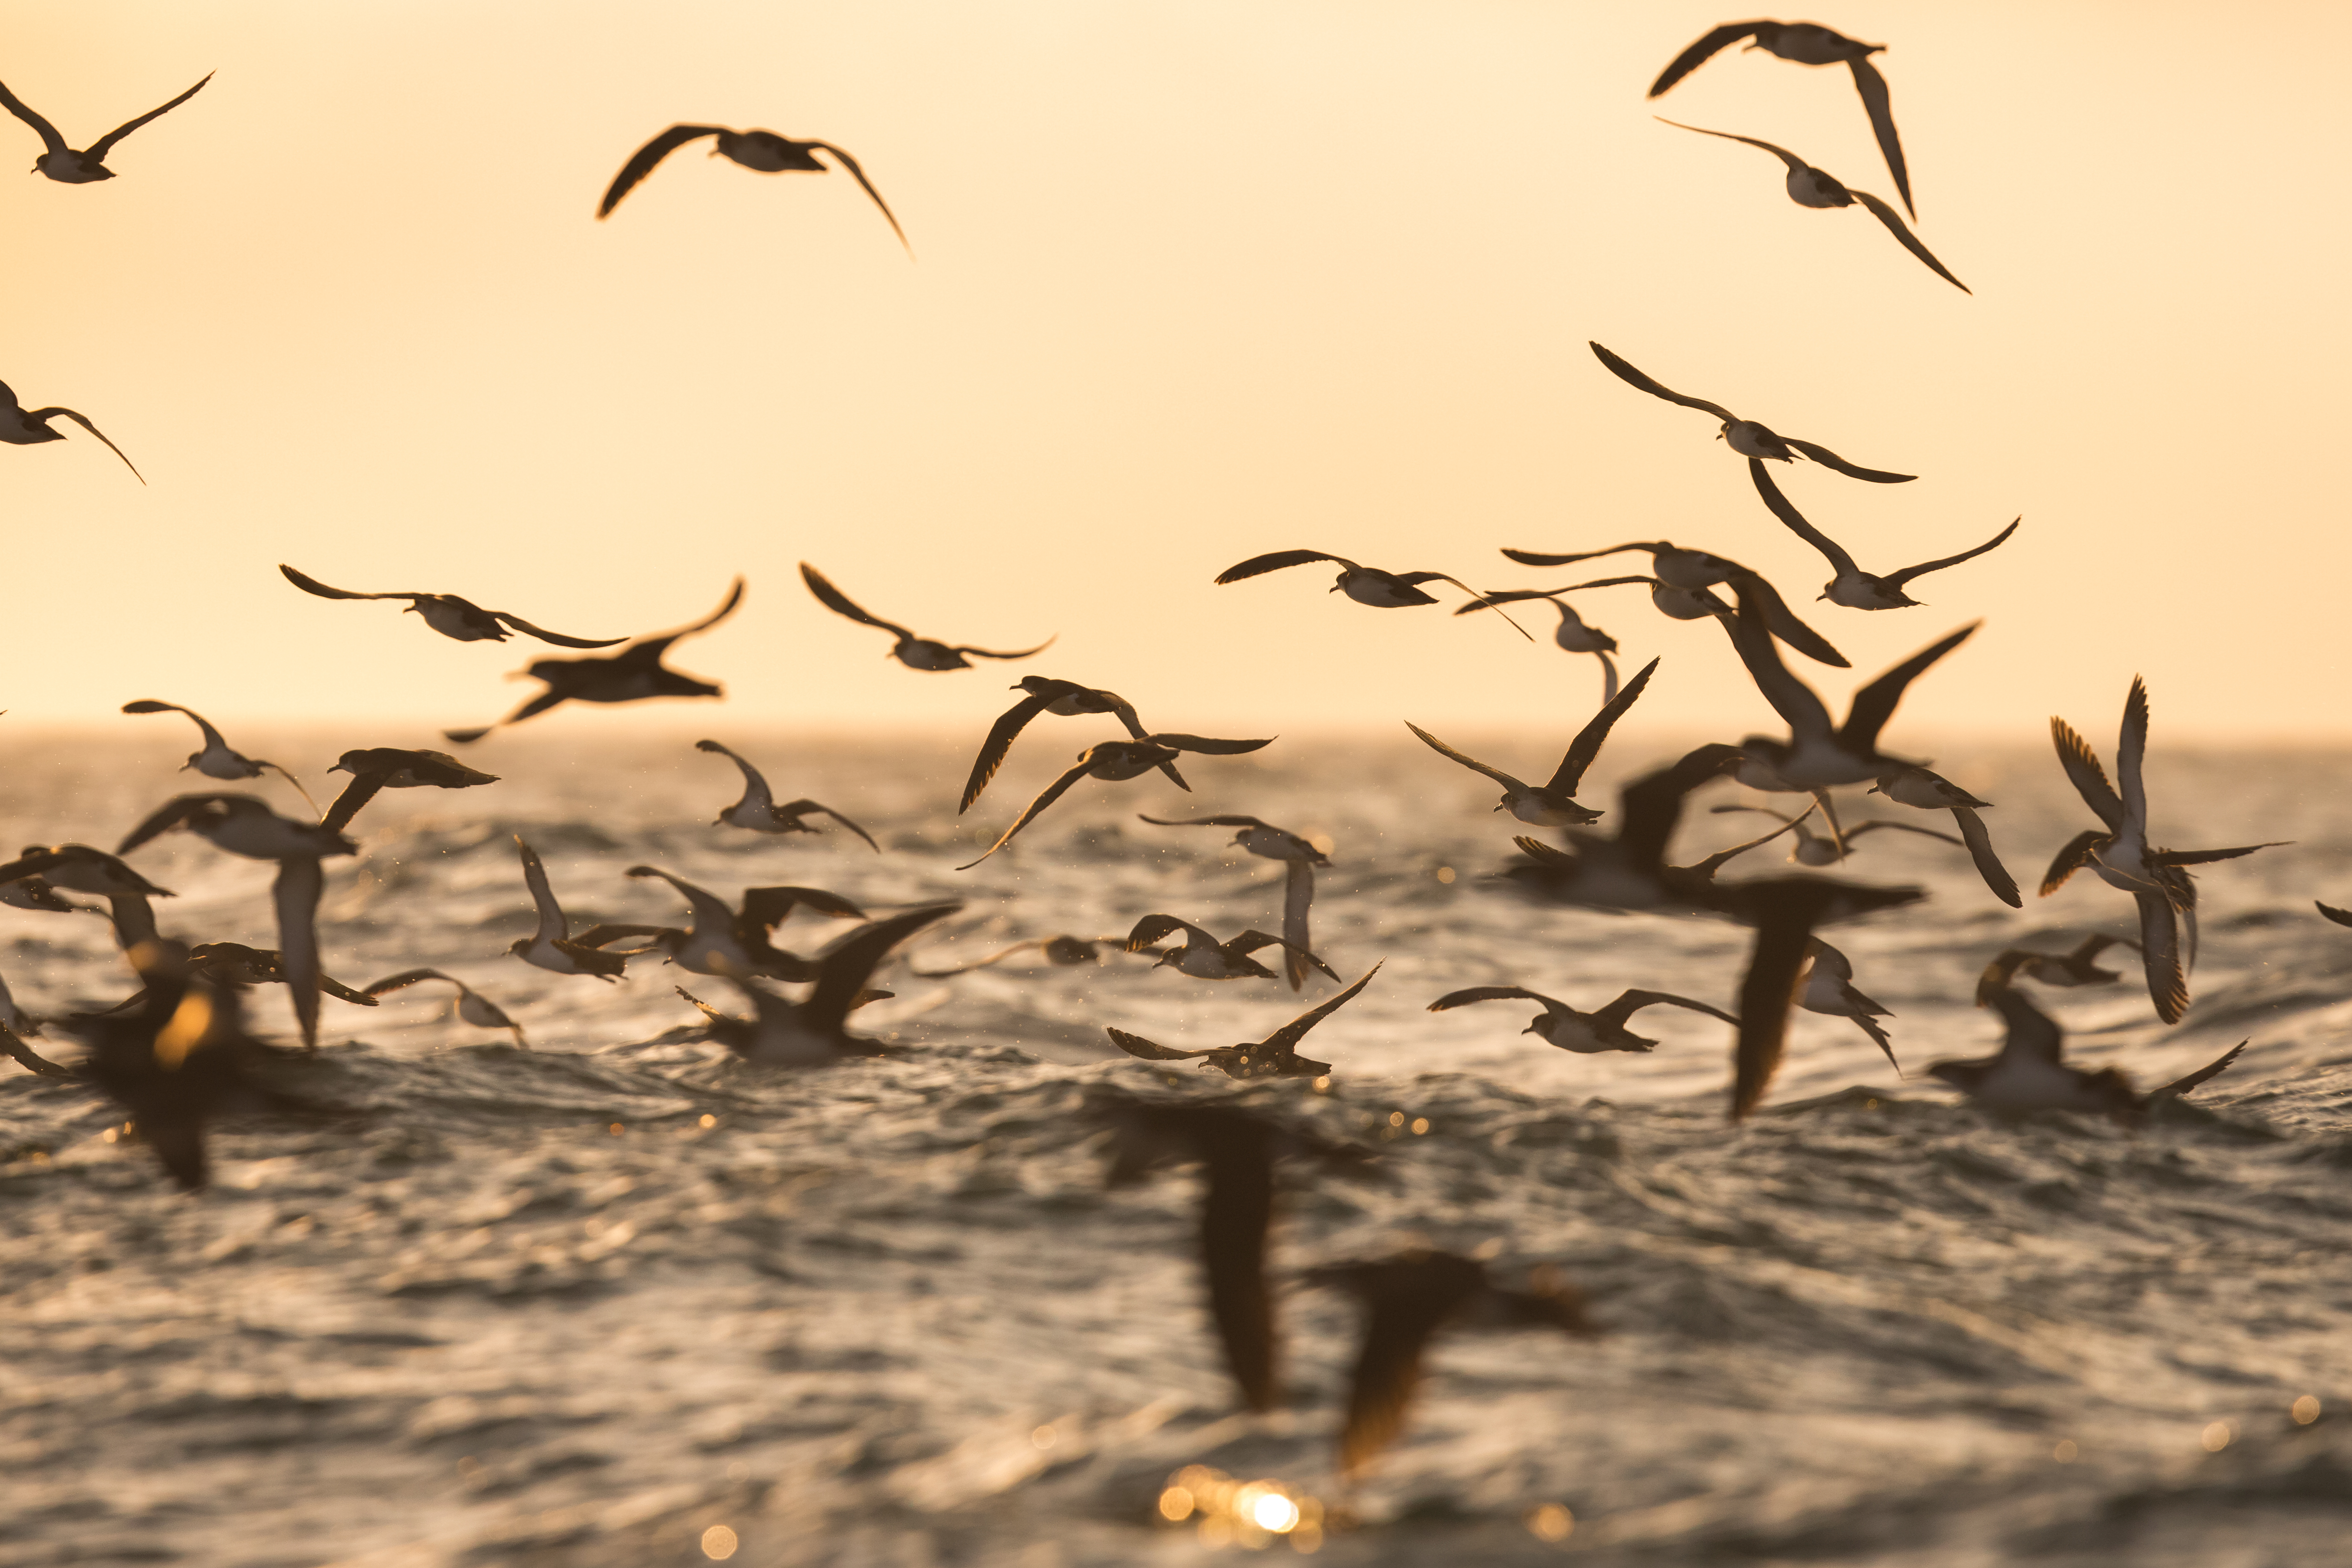 Manx Shearwaters off the Pembrokeshire Coast